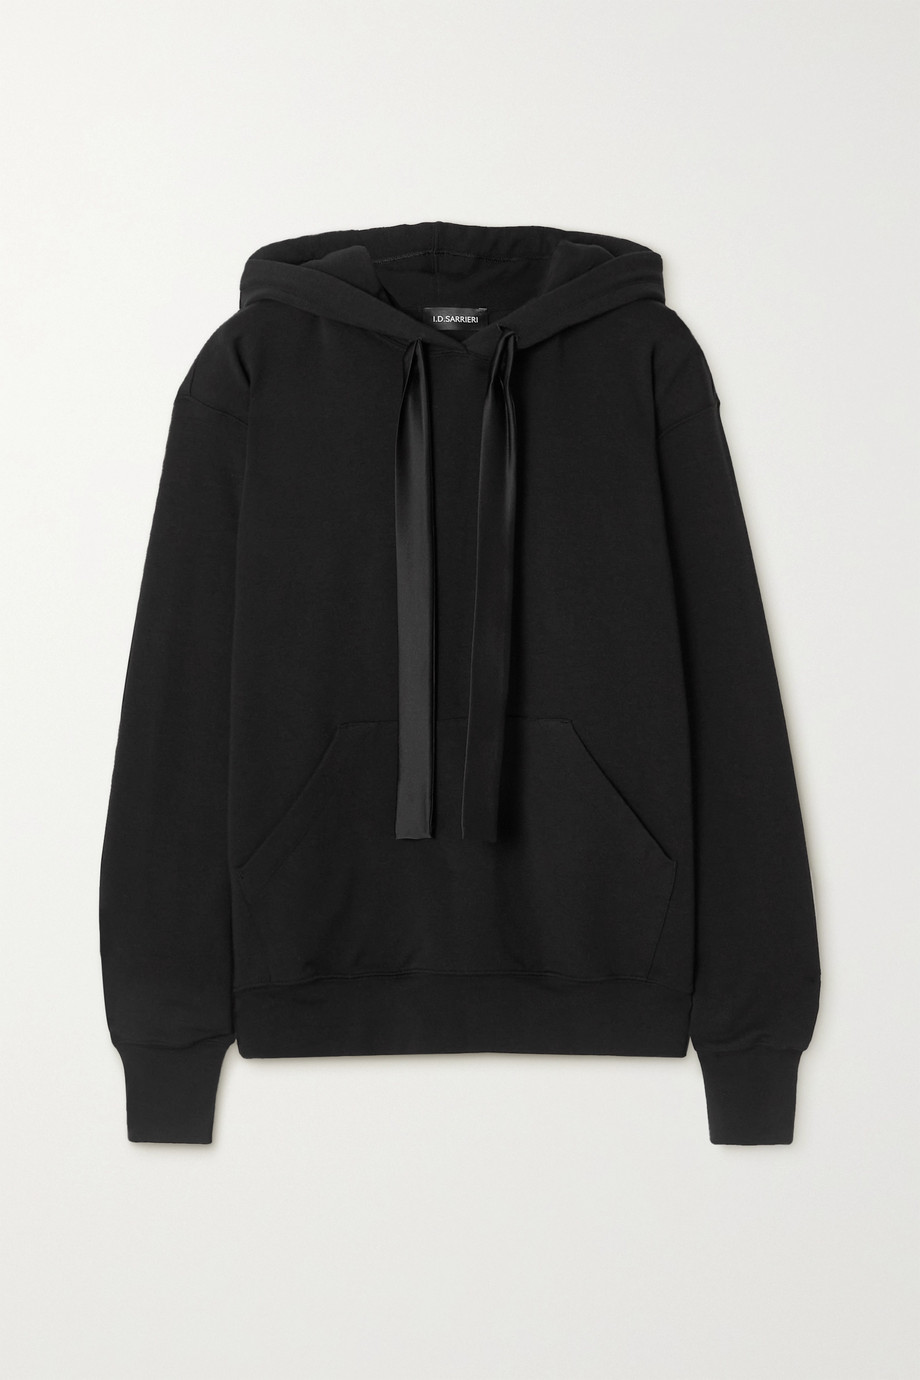 I.D. Sarrieri Break of Dawn satin-trimmed cotton-blend jersey hoodie